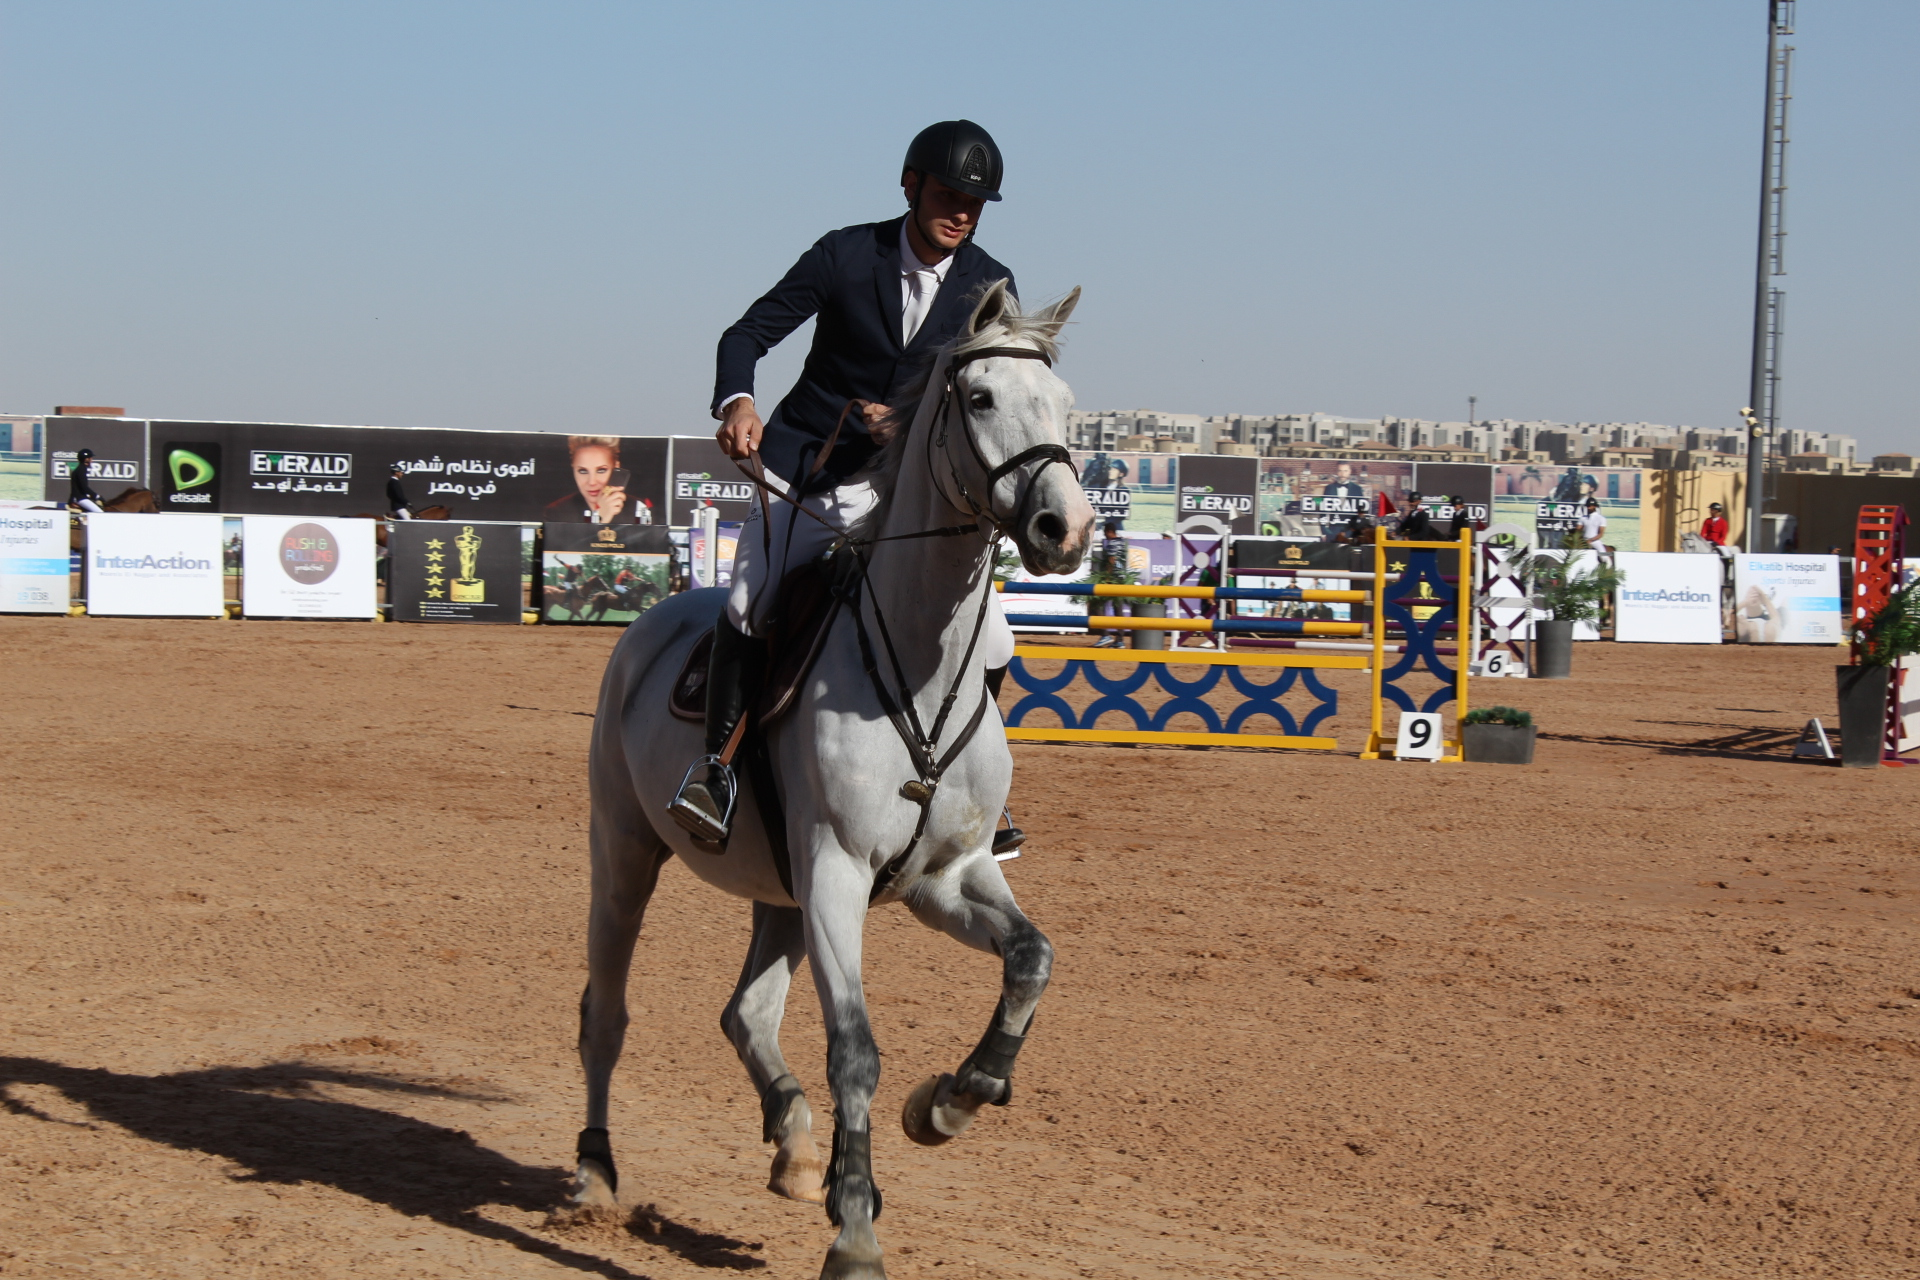 New Cairo's Platinum Club hosts IFCC for equestrians to boost cultural integration - Daily News Egypt